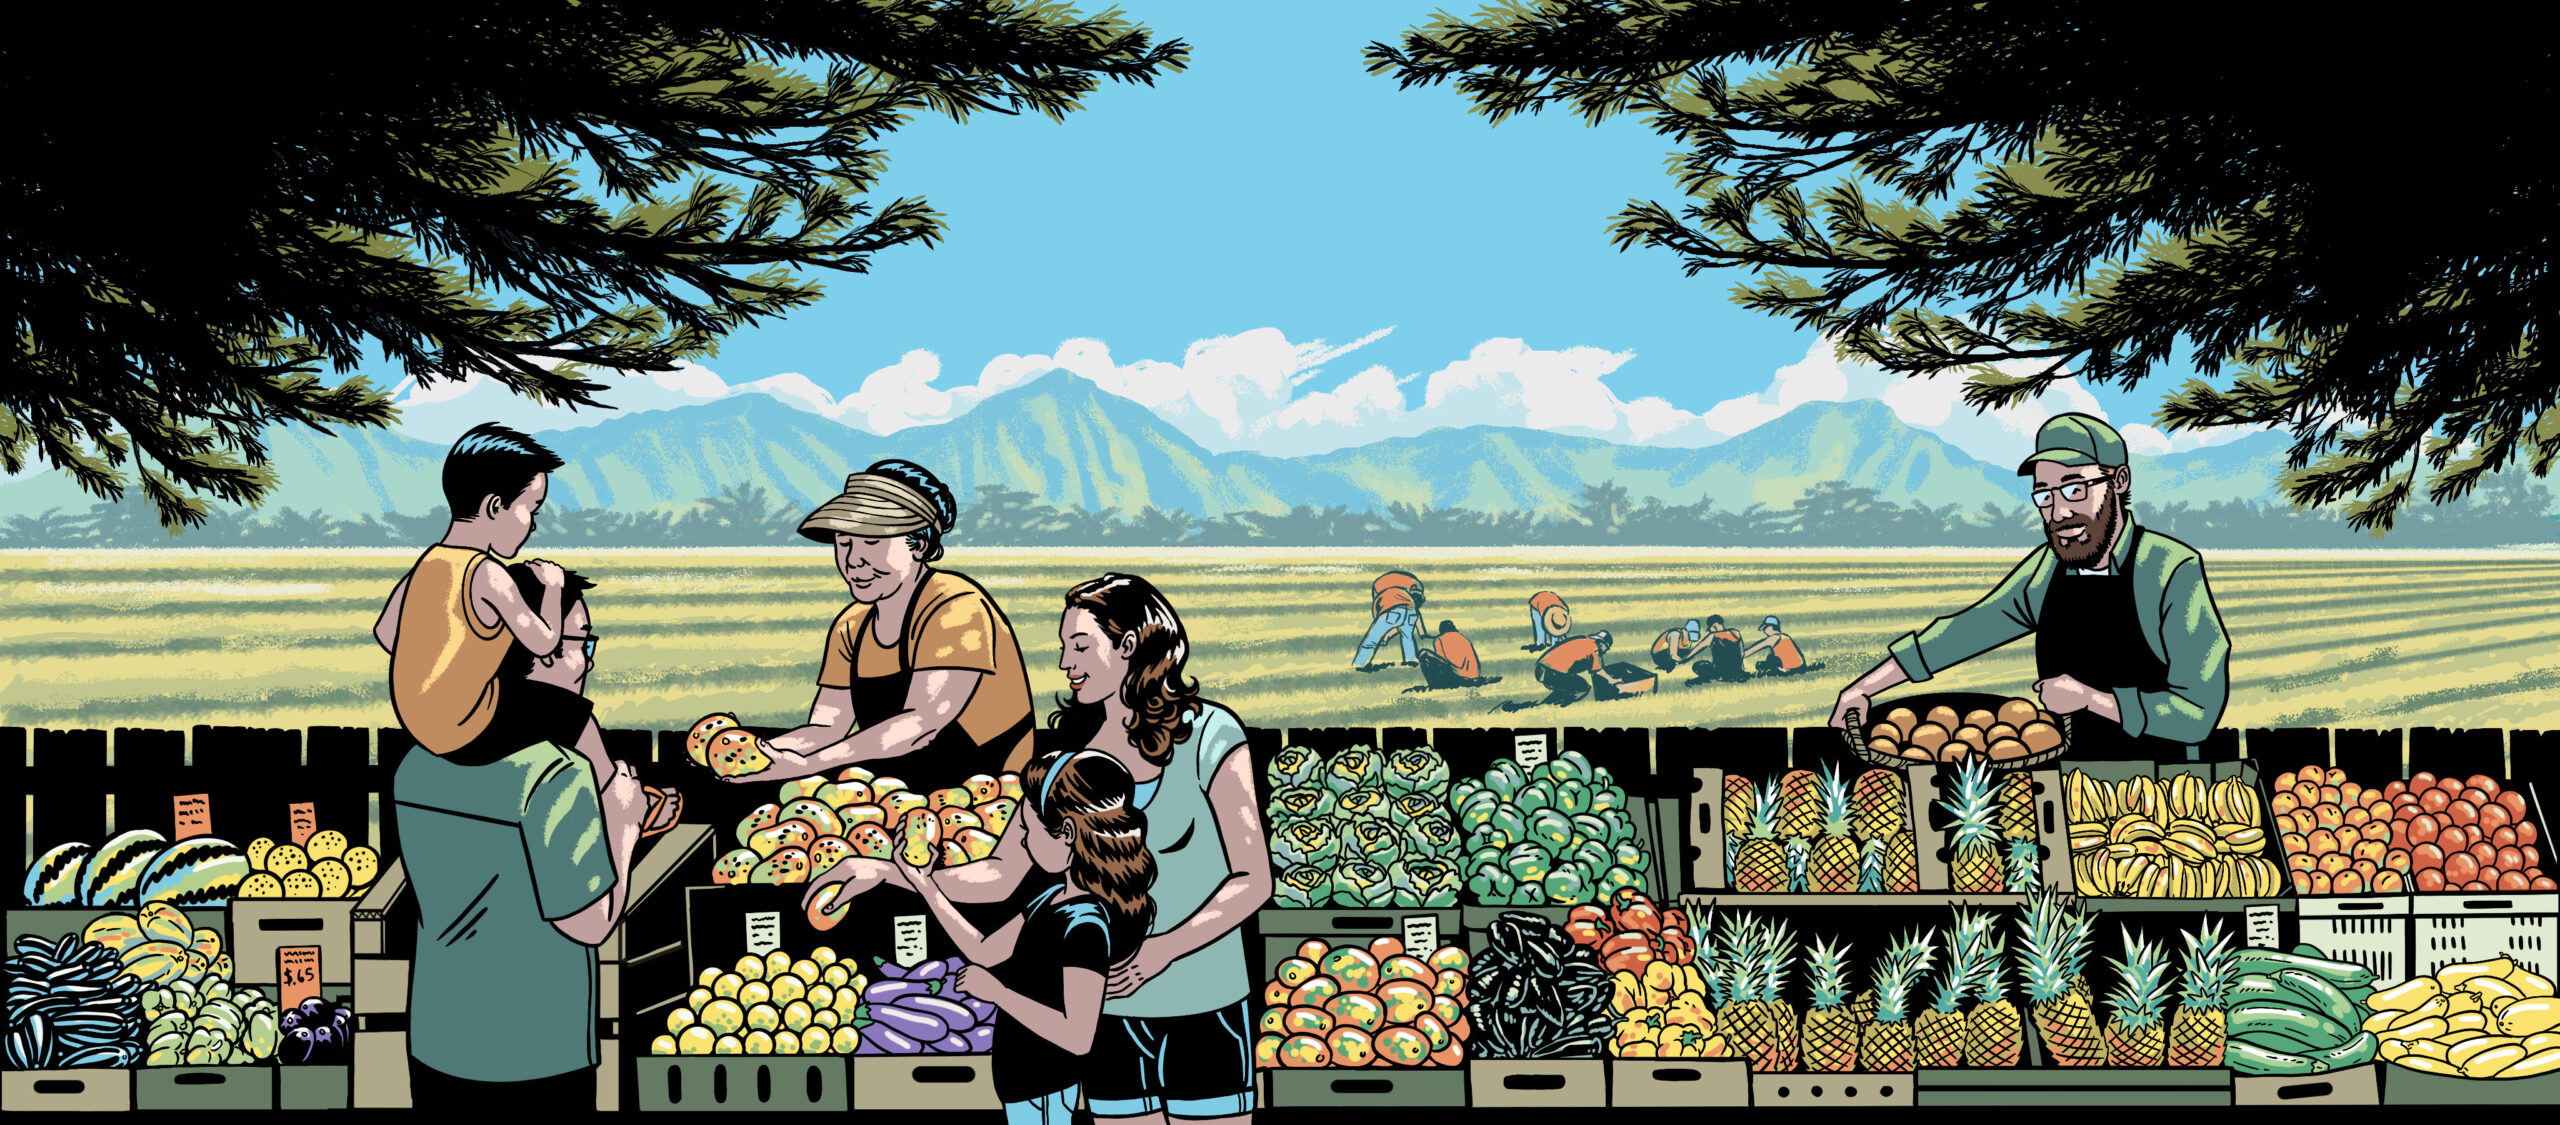 Hawaii's Food System Is Broken. Now Is The Time To Fix It - Honolulu Civil Beat